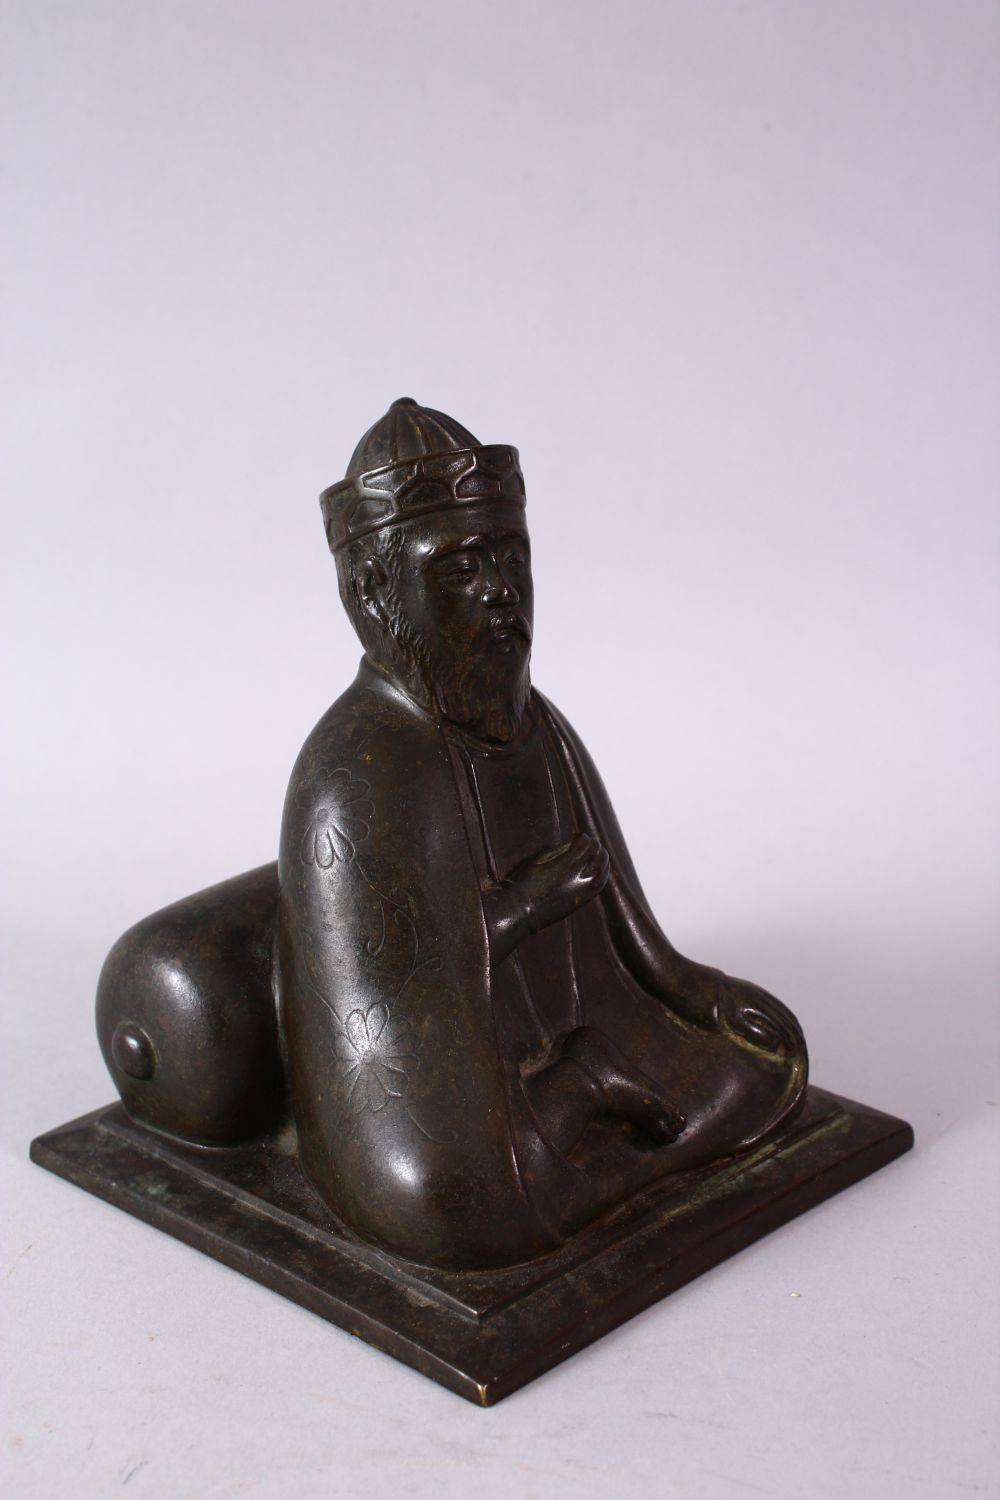 AN 18TH/19TH CENTURY BRONZE SEATED FIGURE OF A SCHOLAR, on a square base, 17cm high. - Image 2 of 6